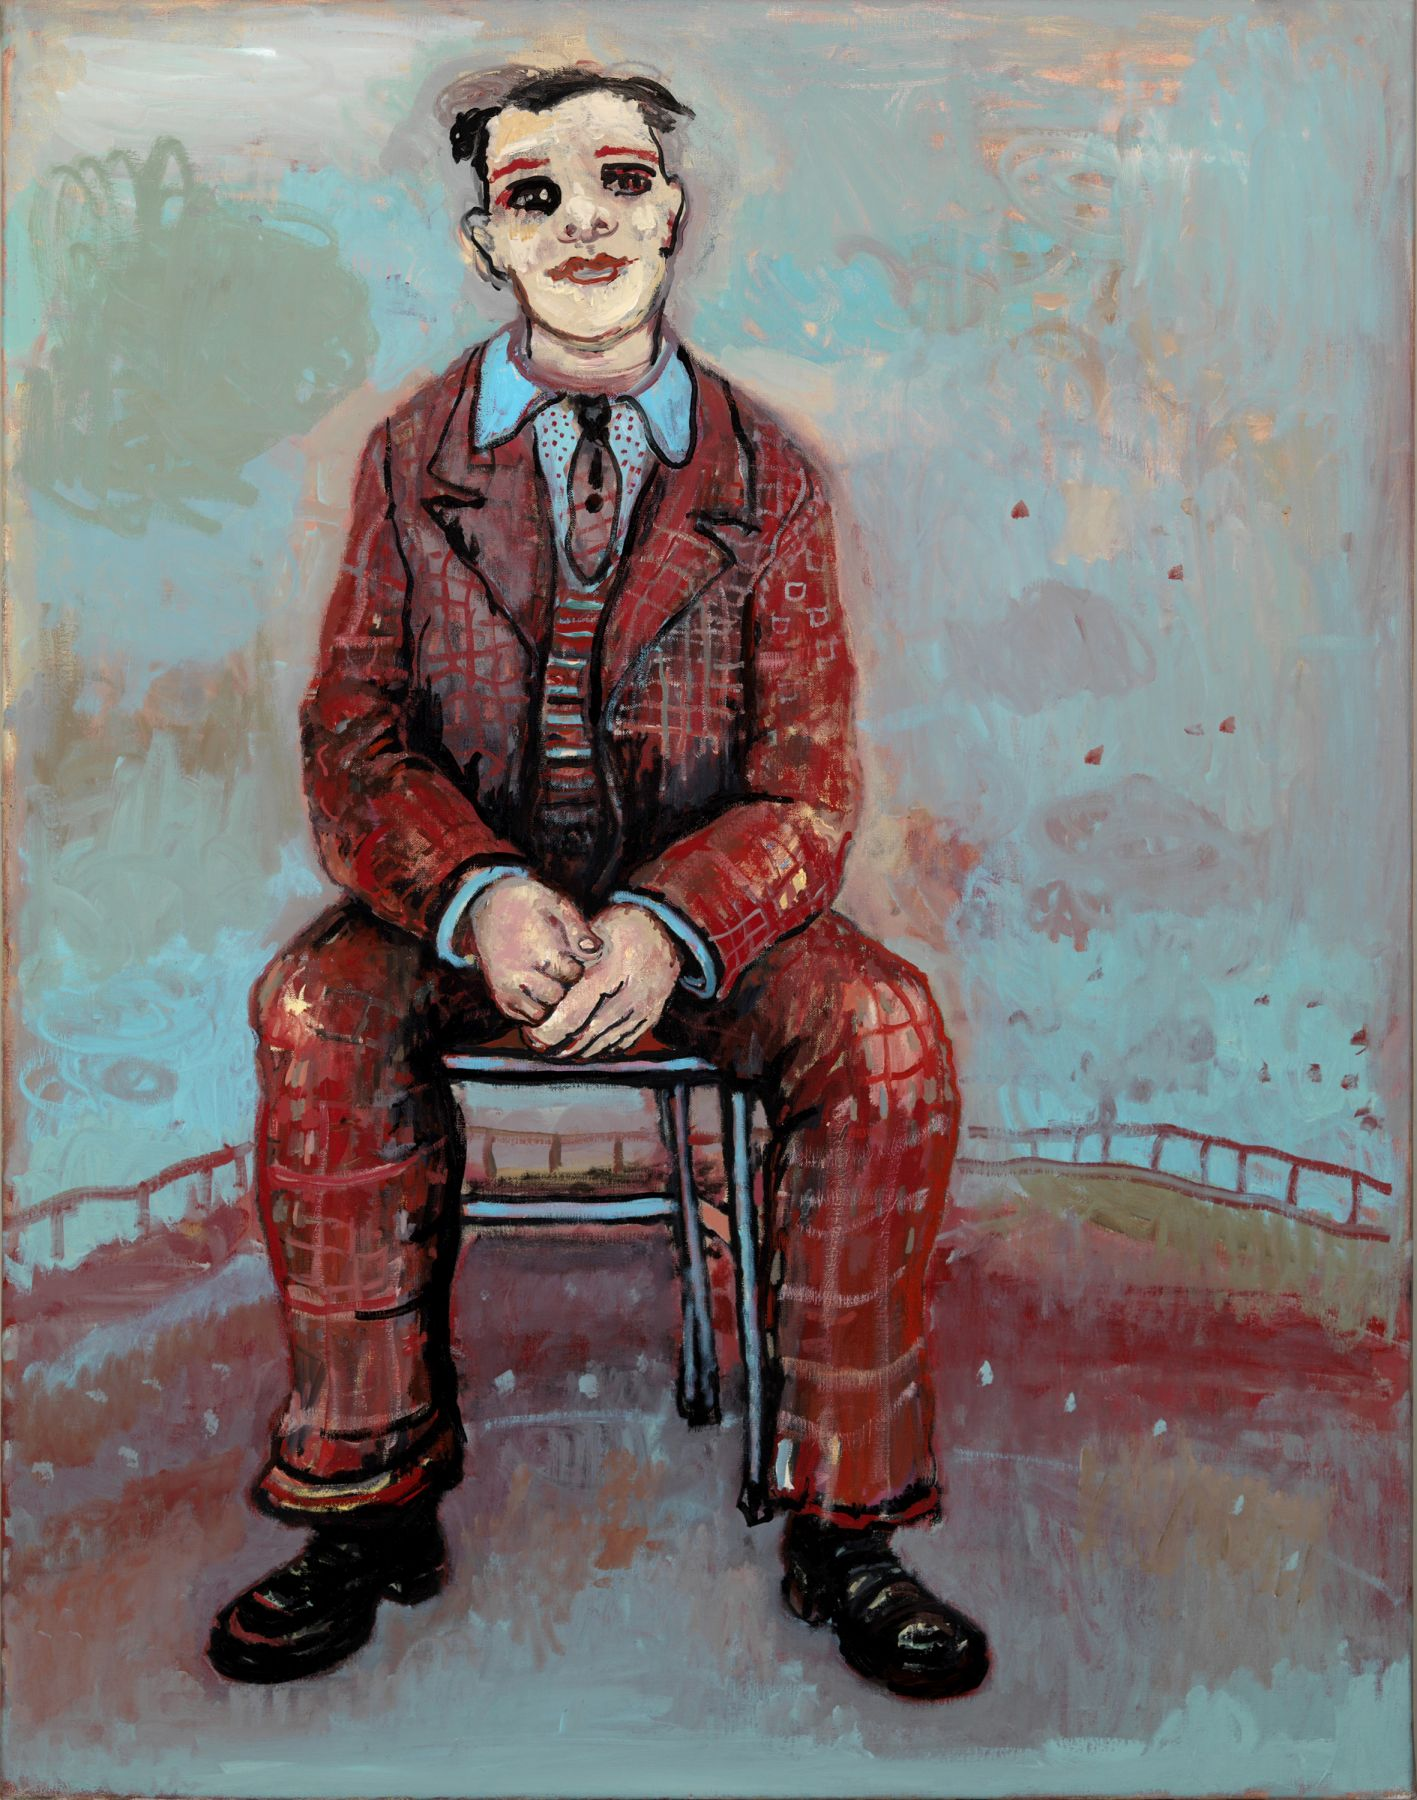 Painting of a seated man in a suit by dutch artist Hannah van Bart